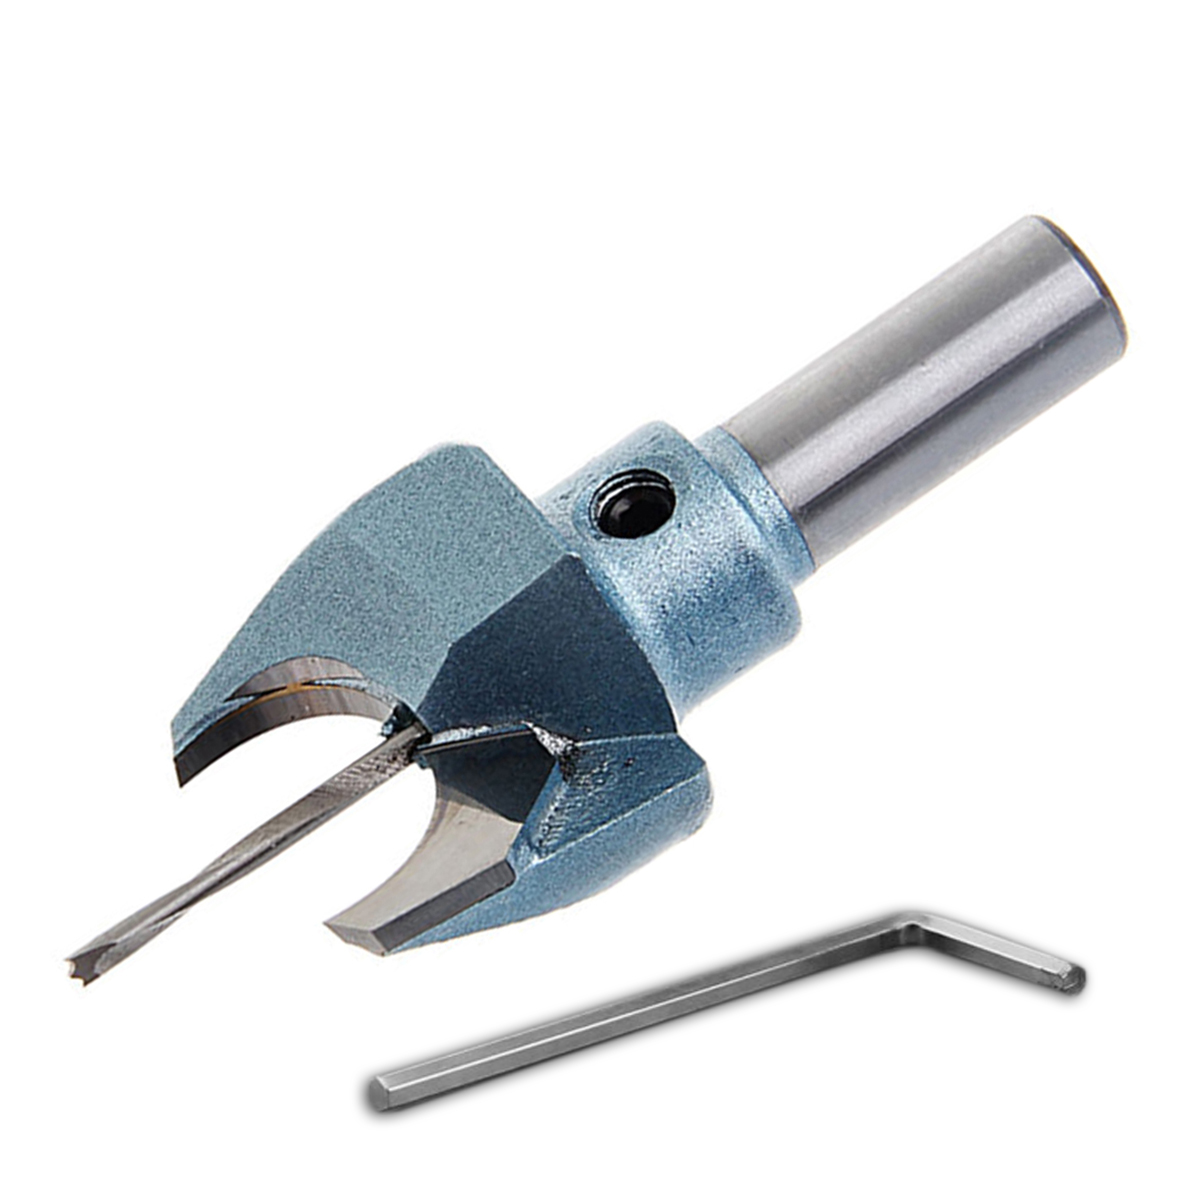 DWZ New 10mm*6mm Buddha Beads Ball Drill Tool Solid Carbide Woodworking Router Bit